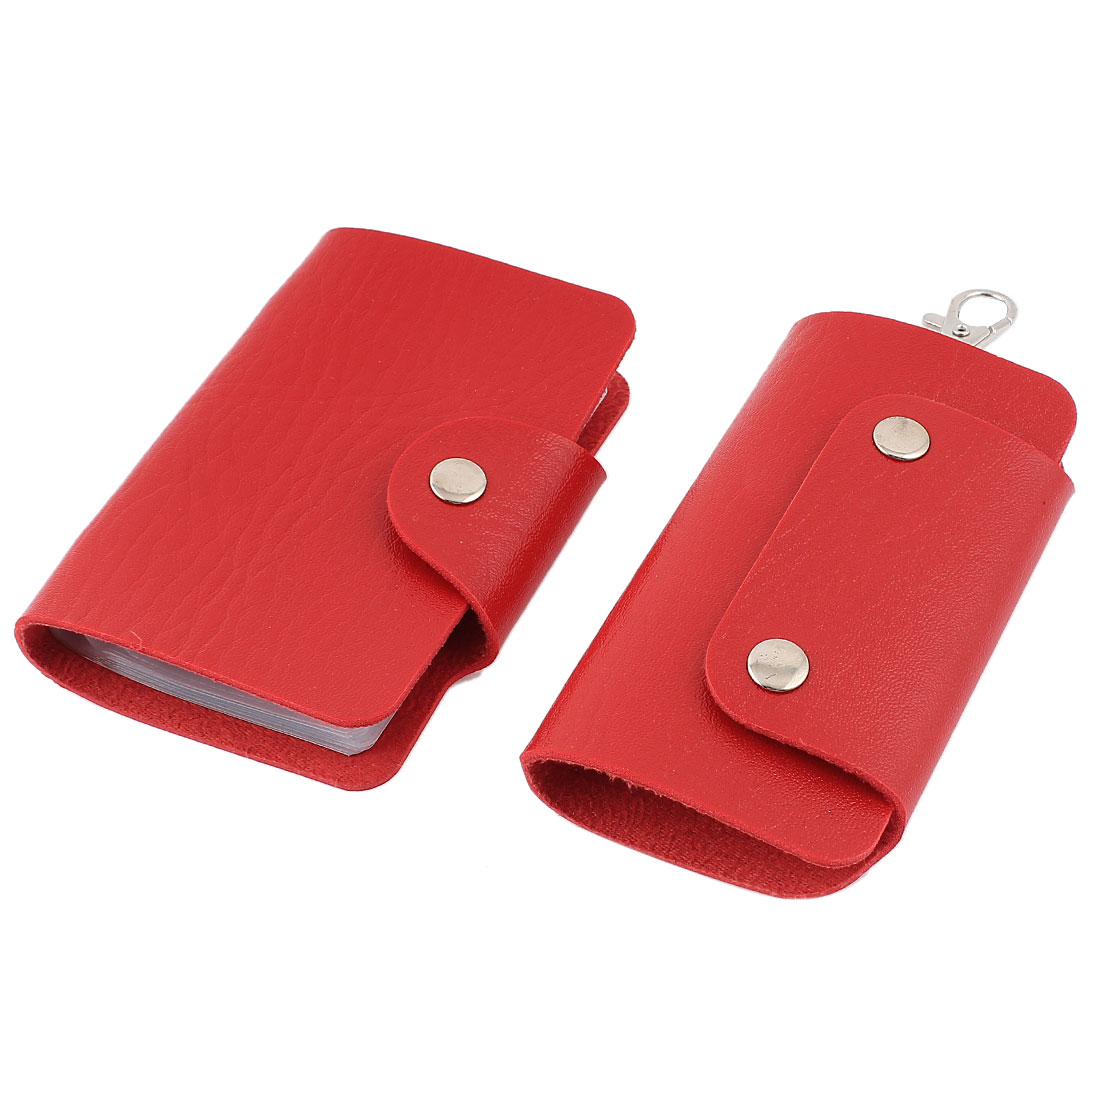 2 Pcs Red Rectangular Faux Leather Cover Car Auto Key Chain Ring Credit VIP Business Card Holder Wallet Case Organizer